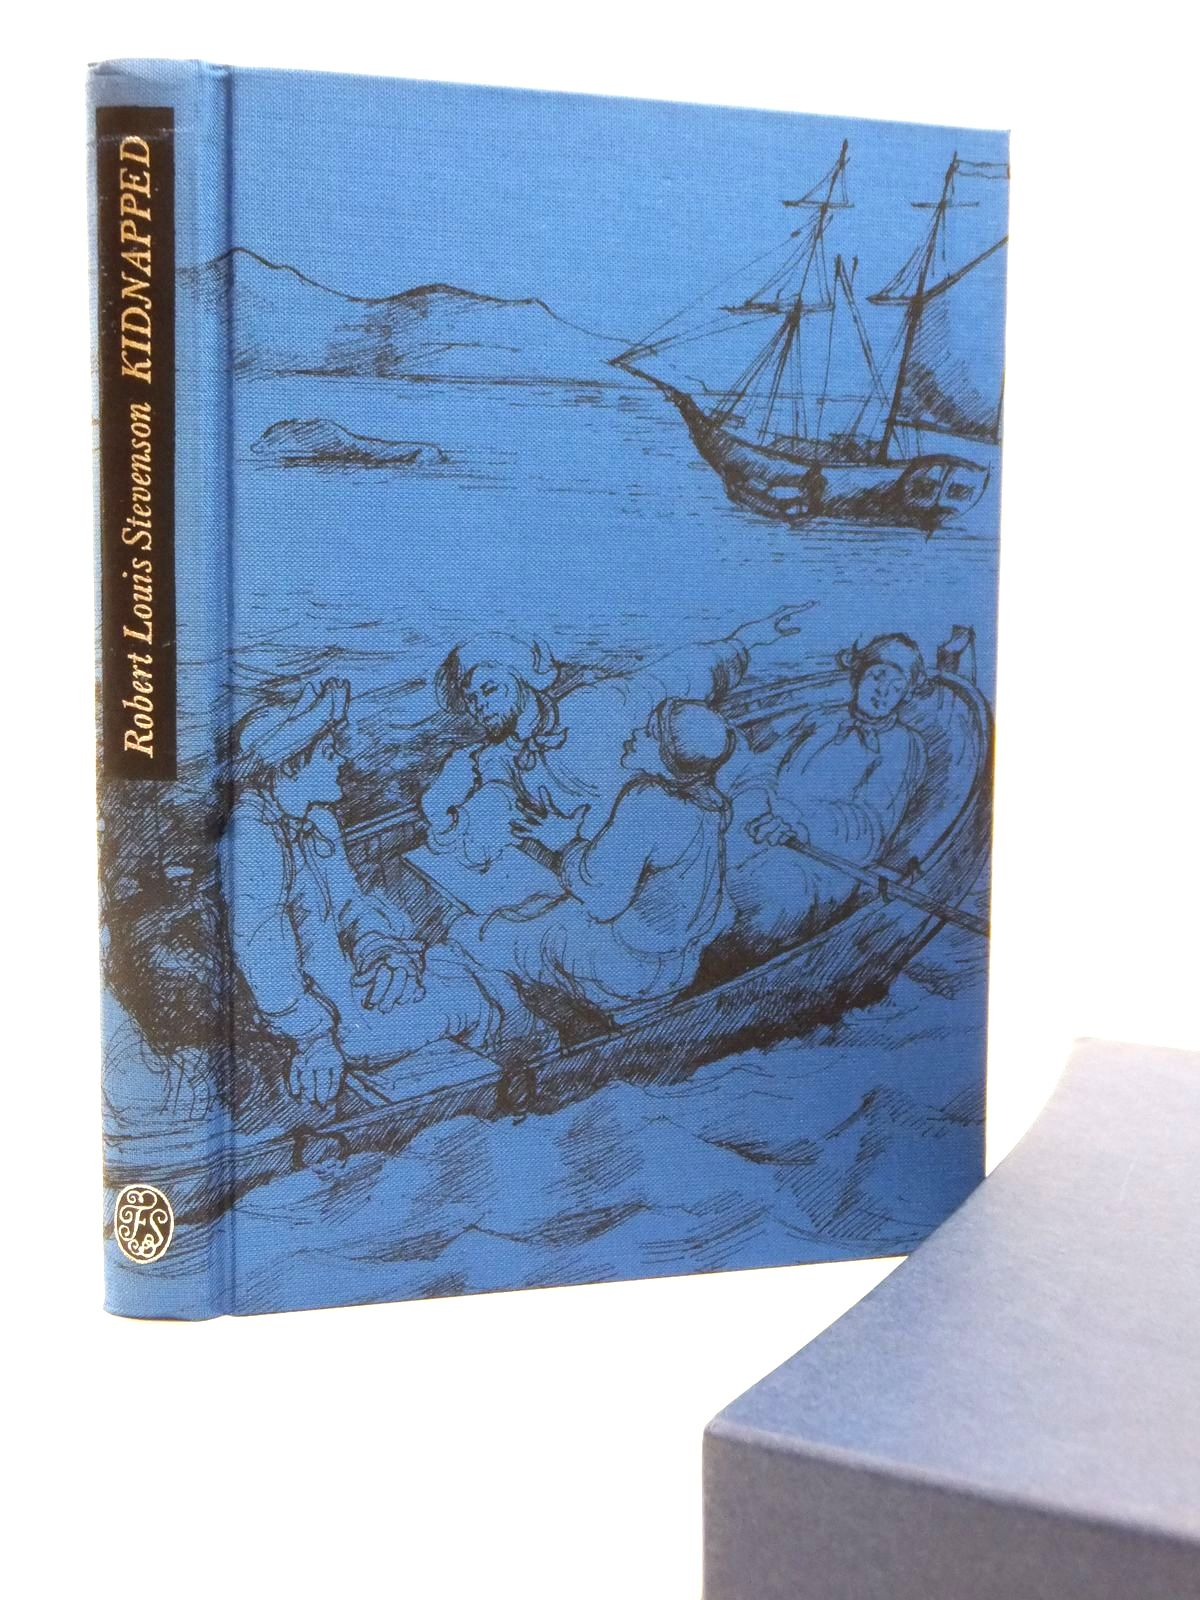 Photo of KIDNAPPED written by Stevenson, Robert Louis illustrated by Newnham, Annie published by Folio Society (STOCK CODE: 2122939)  for sale by Stella & Rose's Books